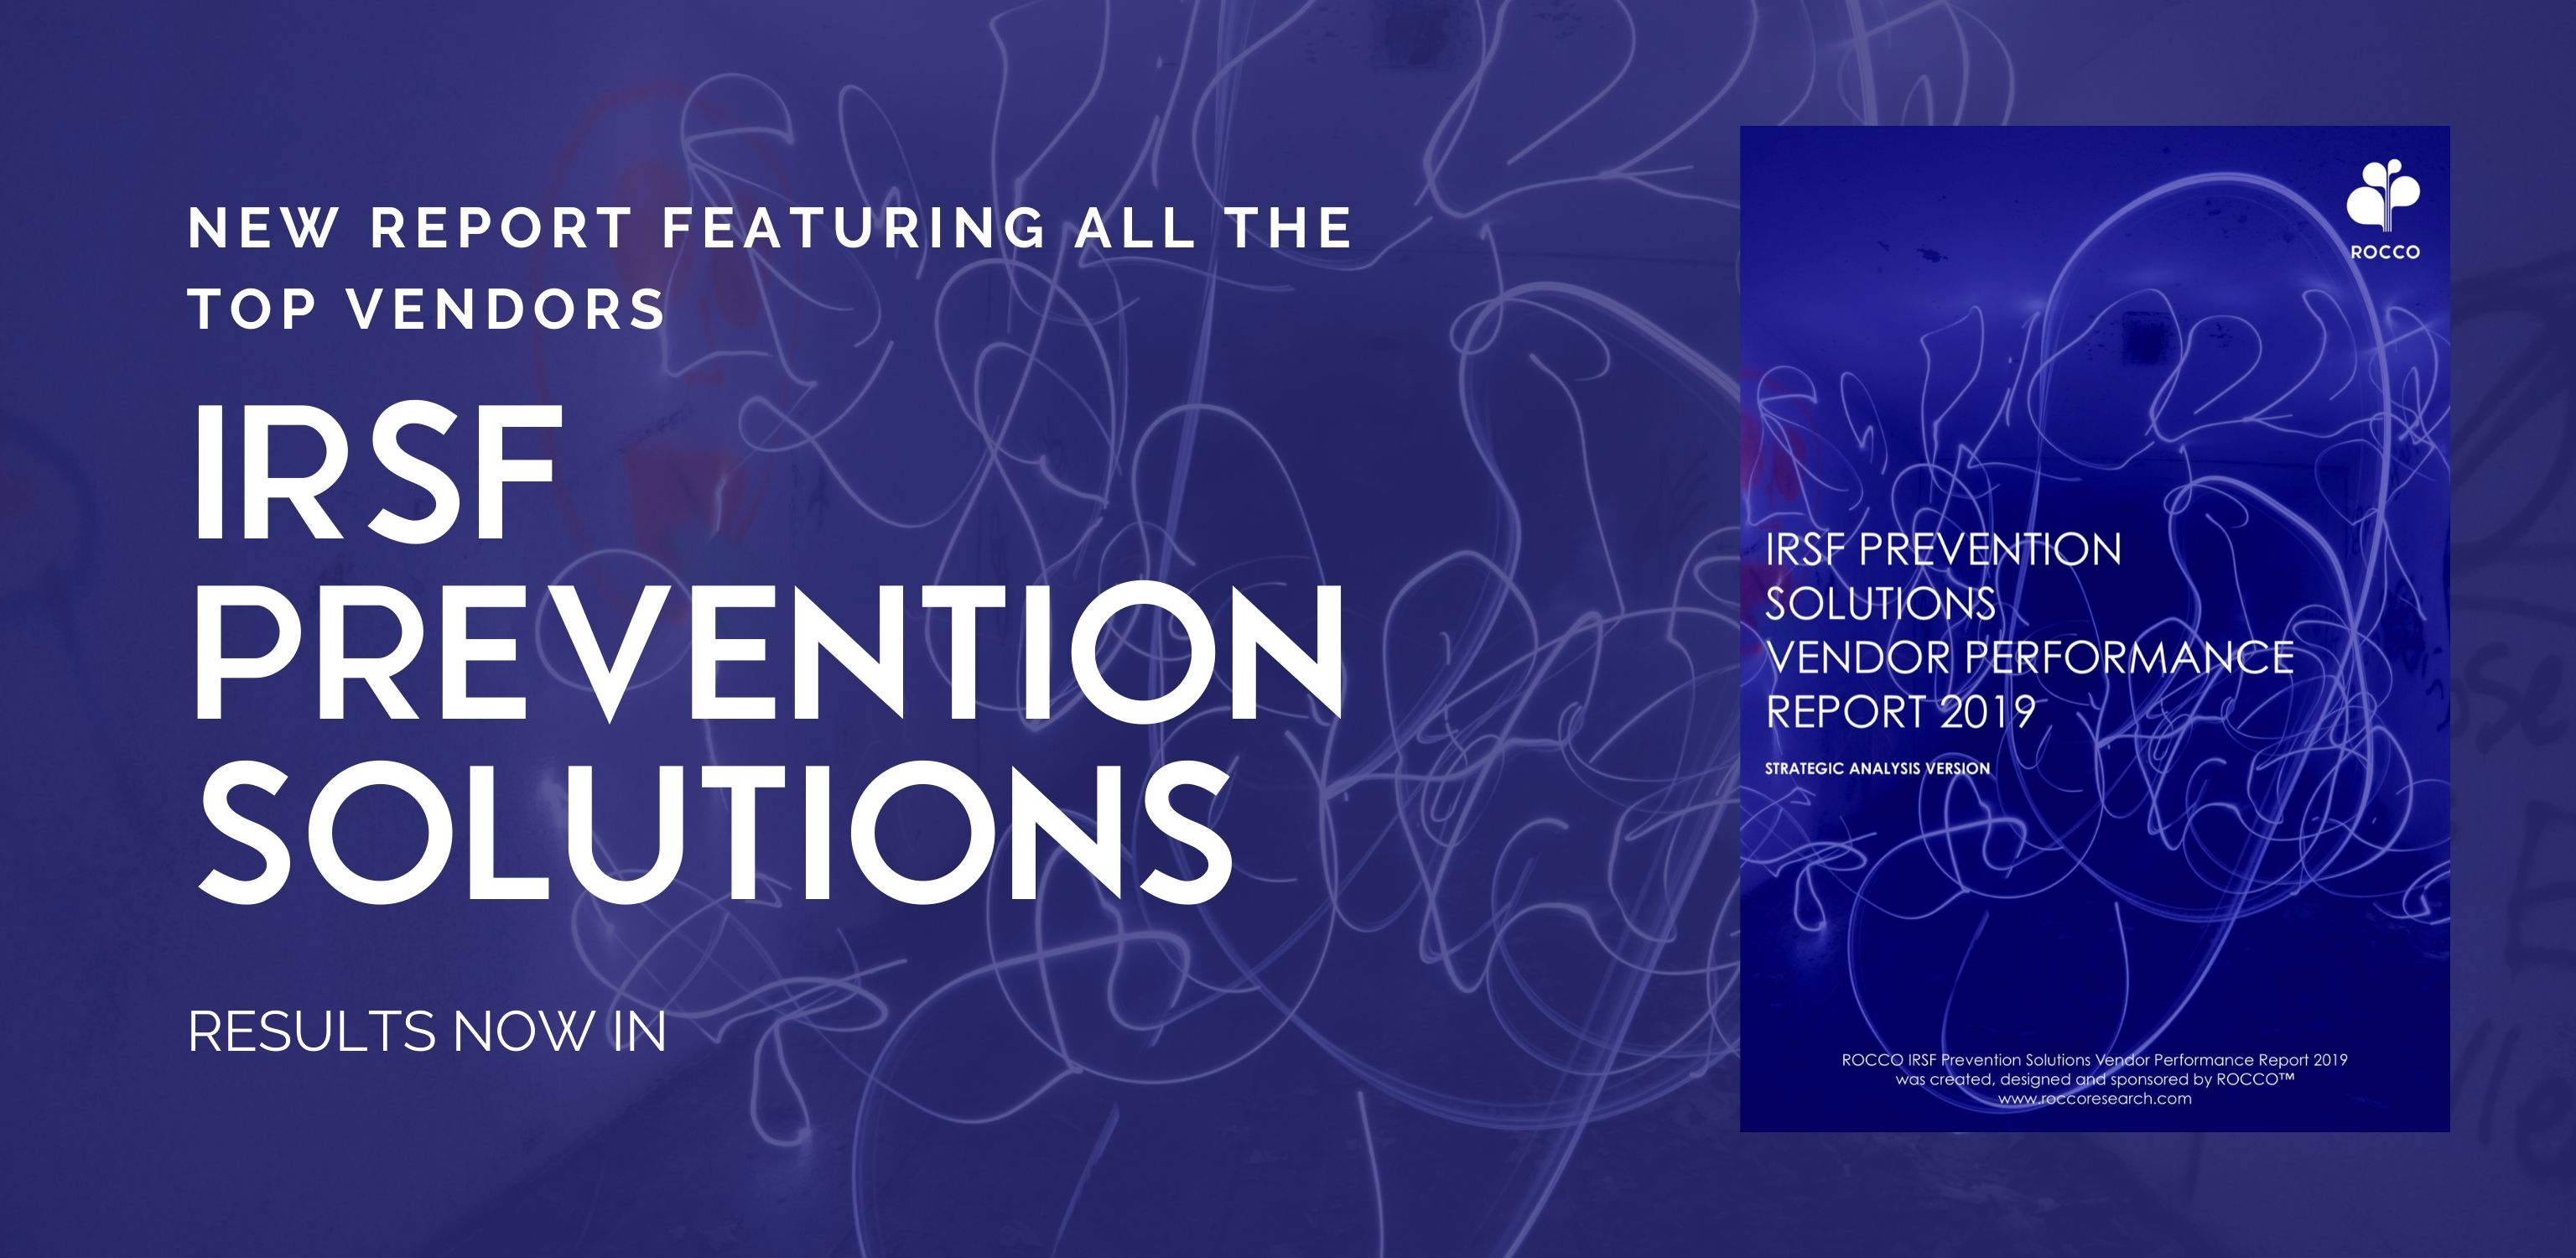 RESULTS: IRSF PREVENTION SOLUTIONS VENDOR PERFORMANCE 2019